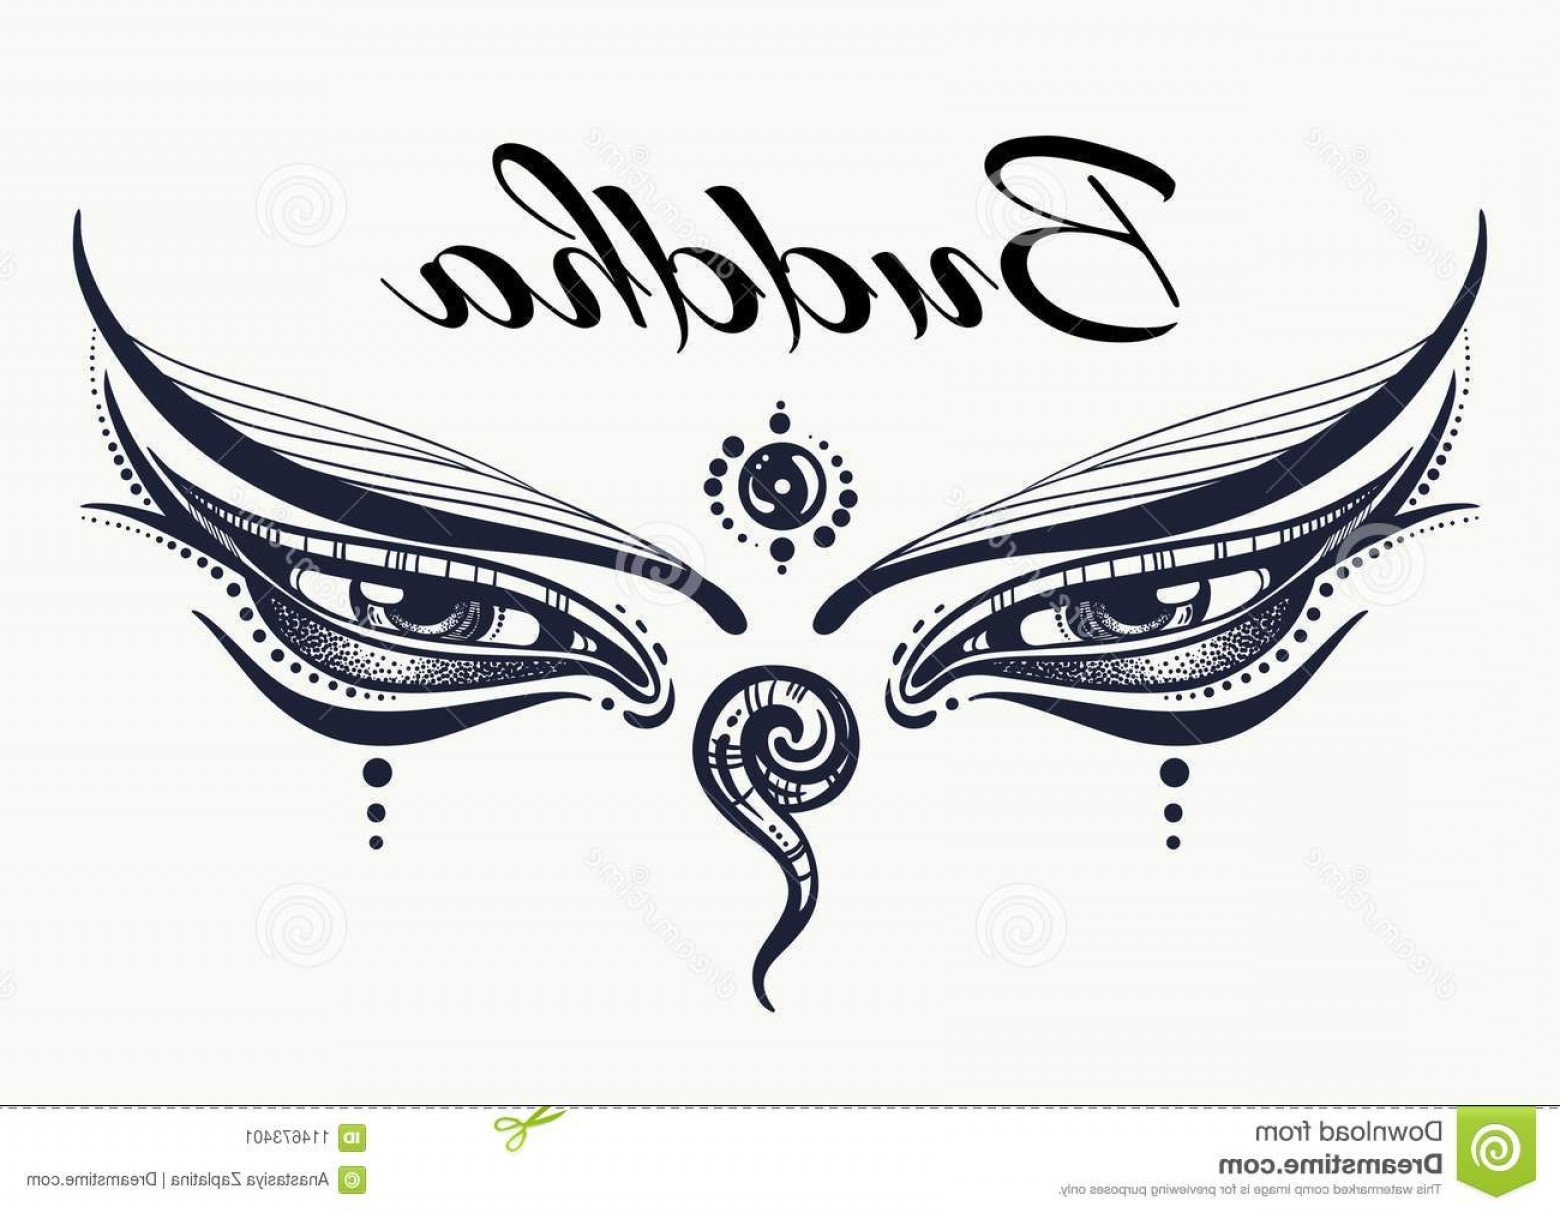 Detailed Tattoo Vector Images: Eyes Buddha Wisdom Concept Hand Drawn High Detailed Engraved Vector Art Tattoo Yoga Spiritualy Textile Image